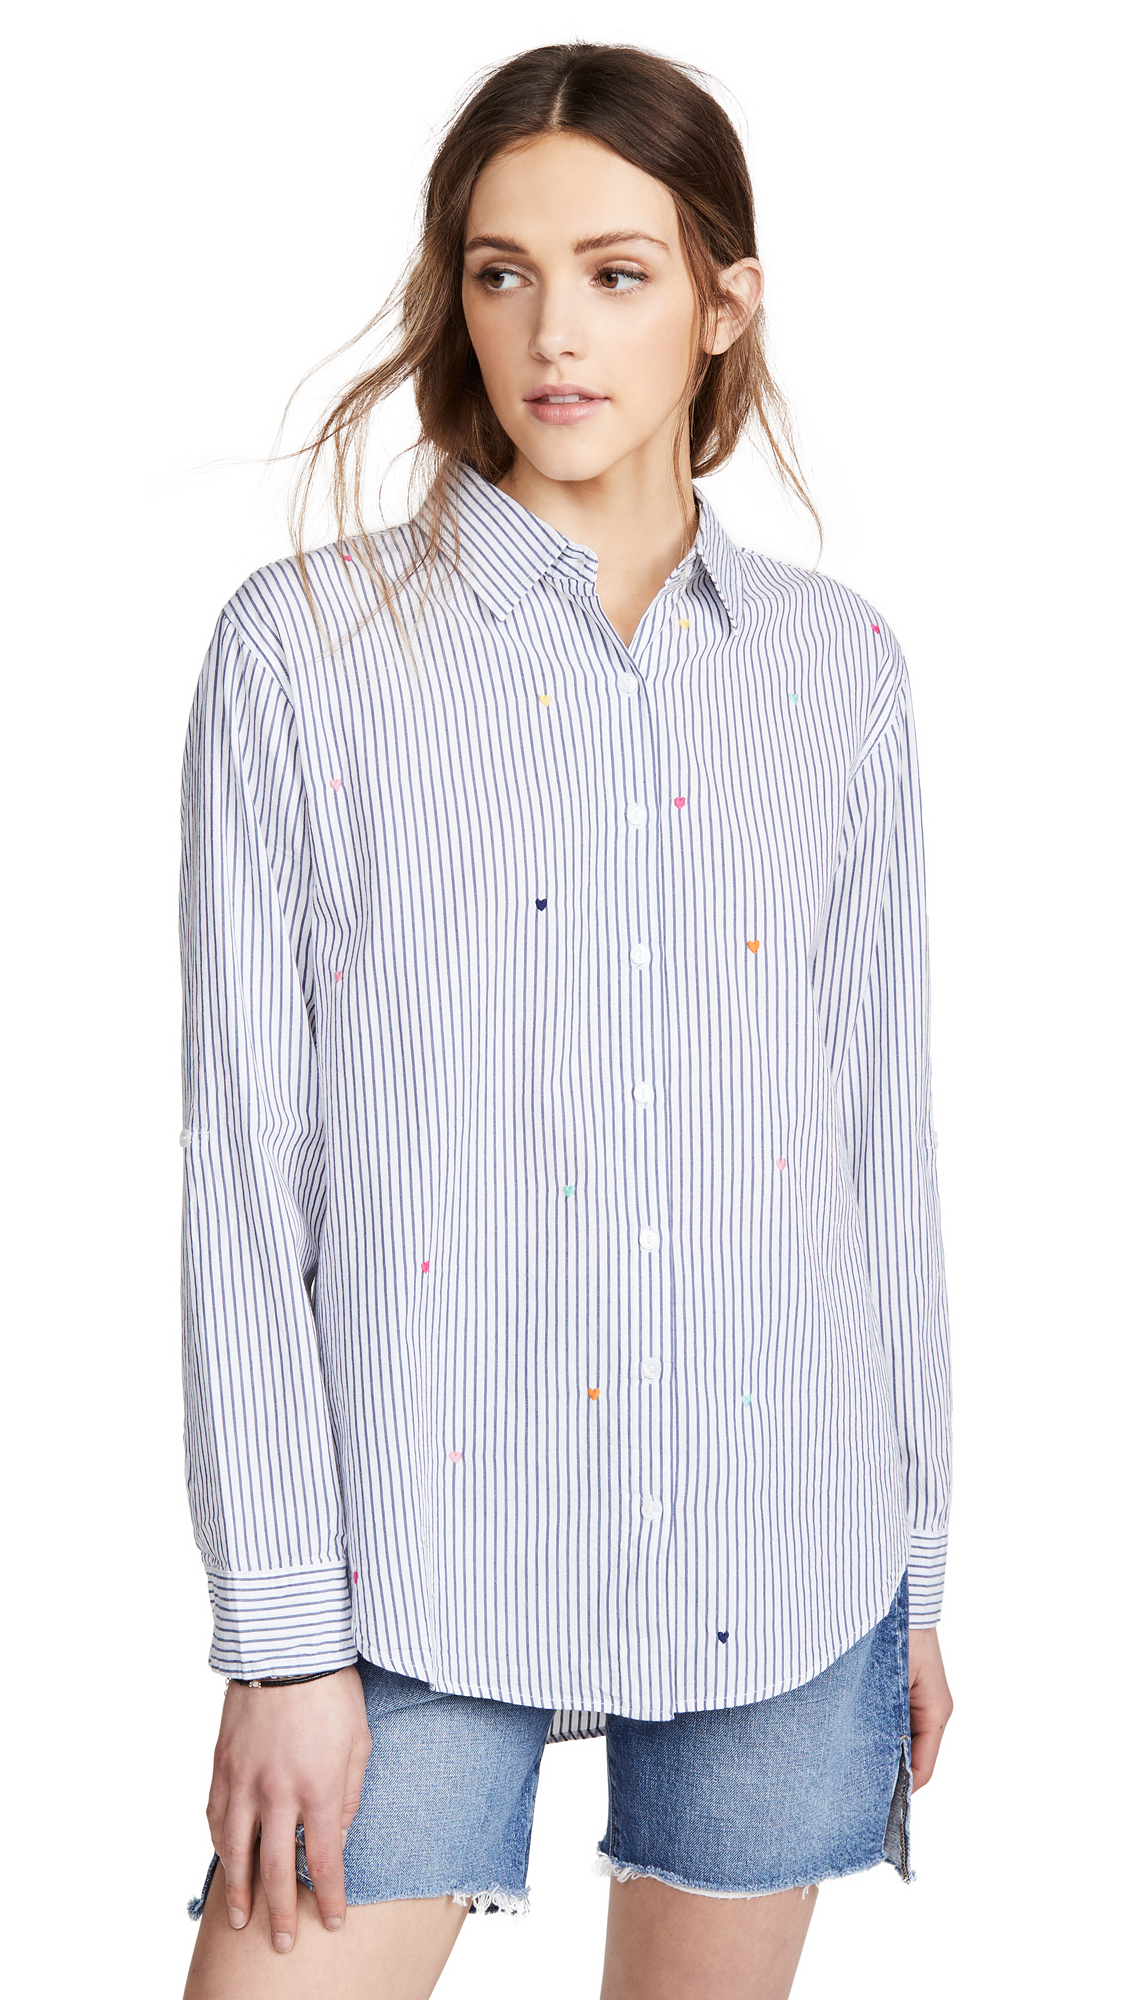 SUNDRY Oversize Shirt - 30% Off Sale